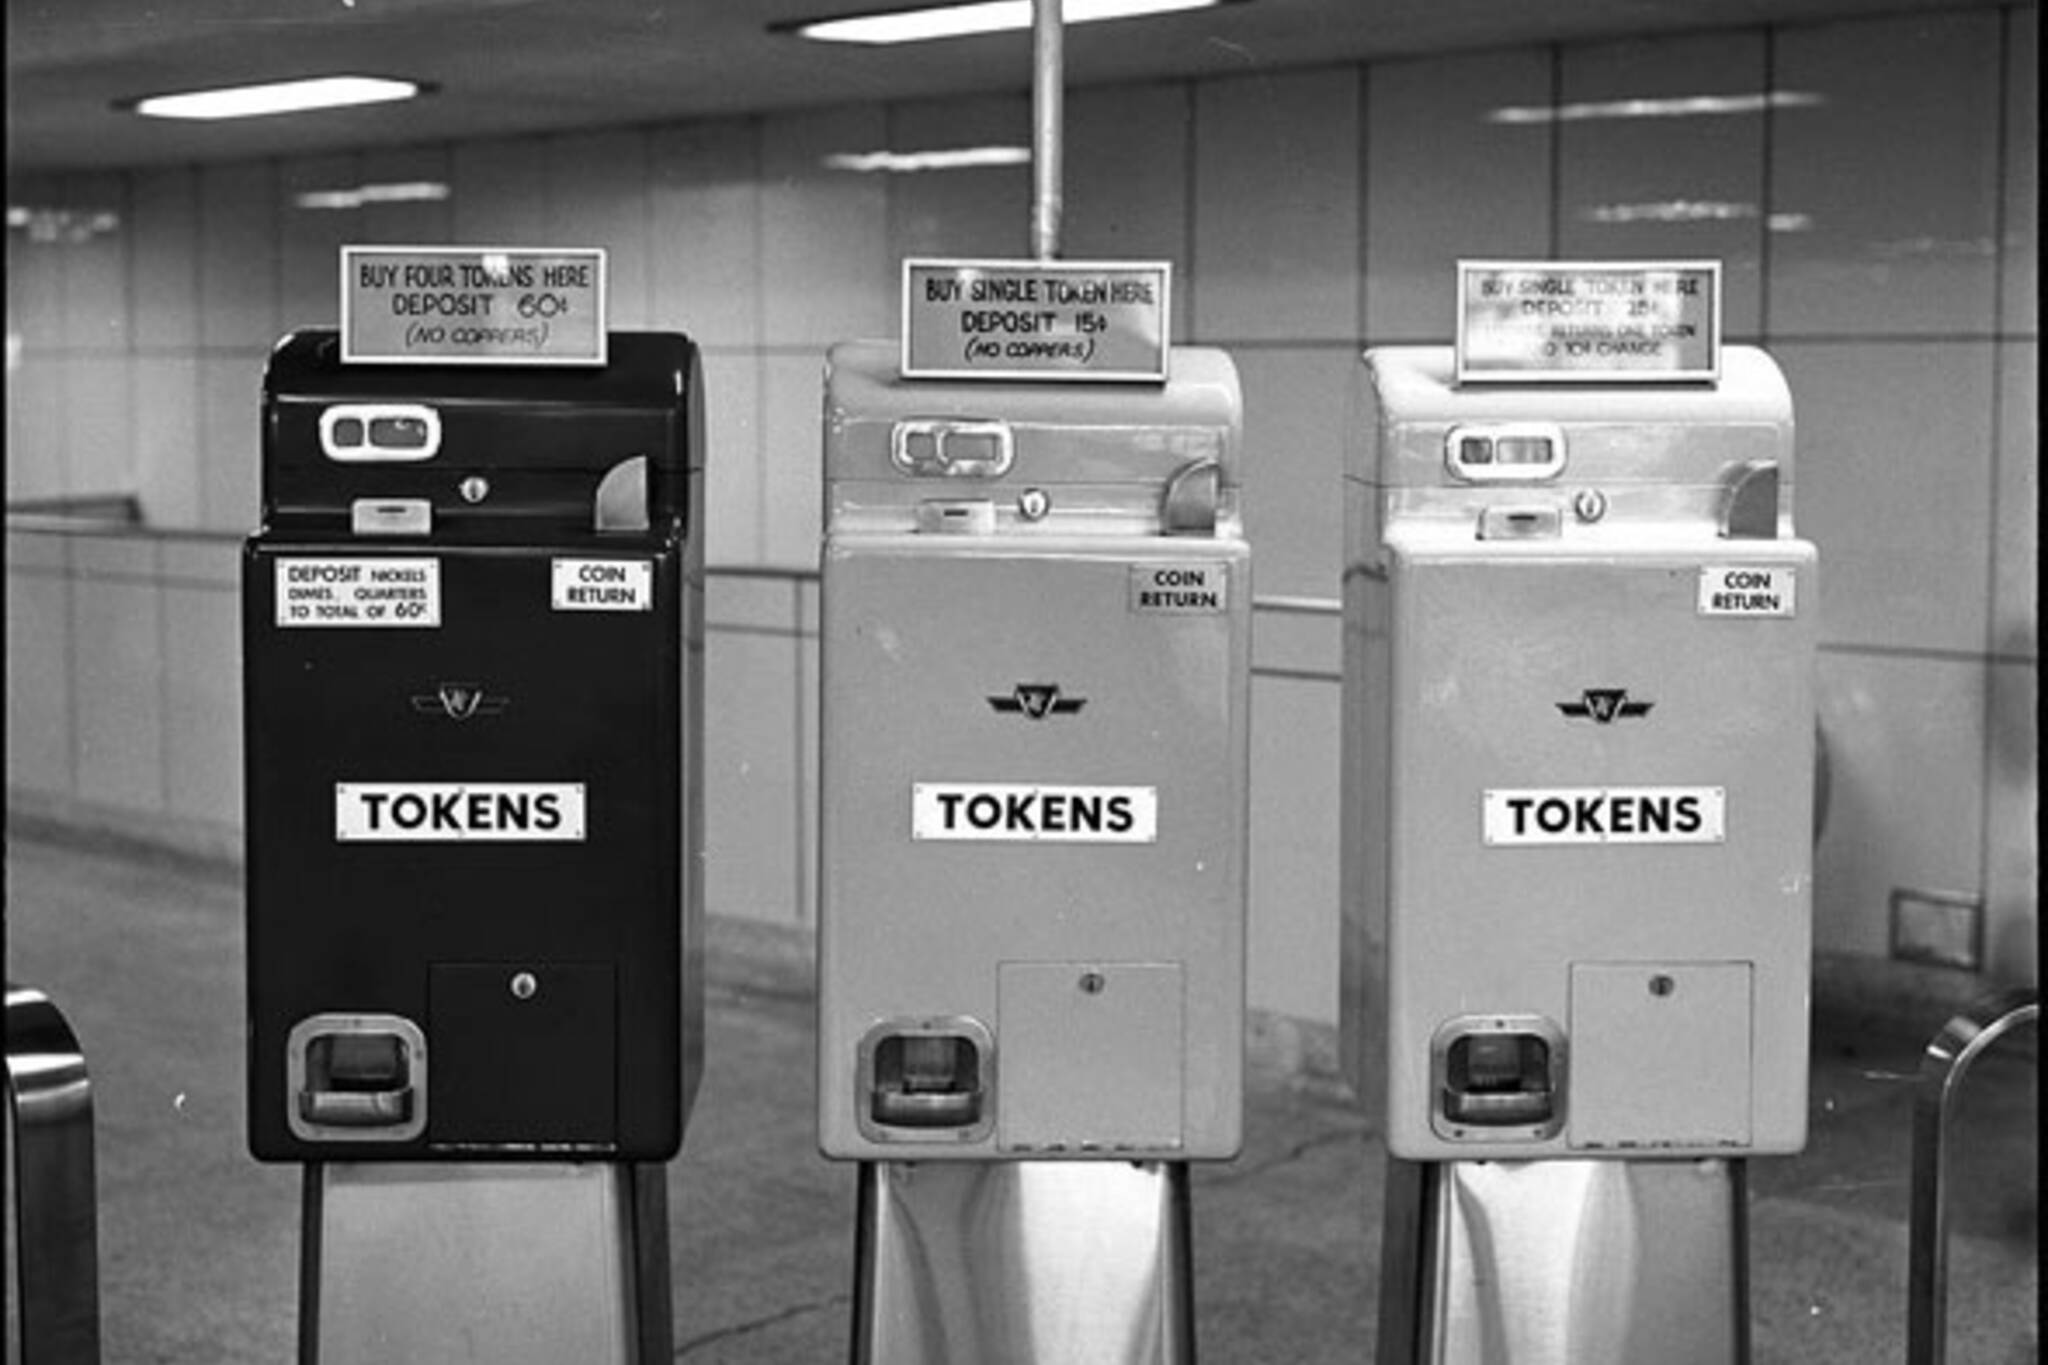 ttc tokens